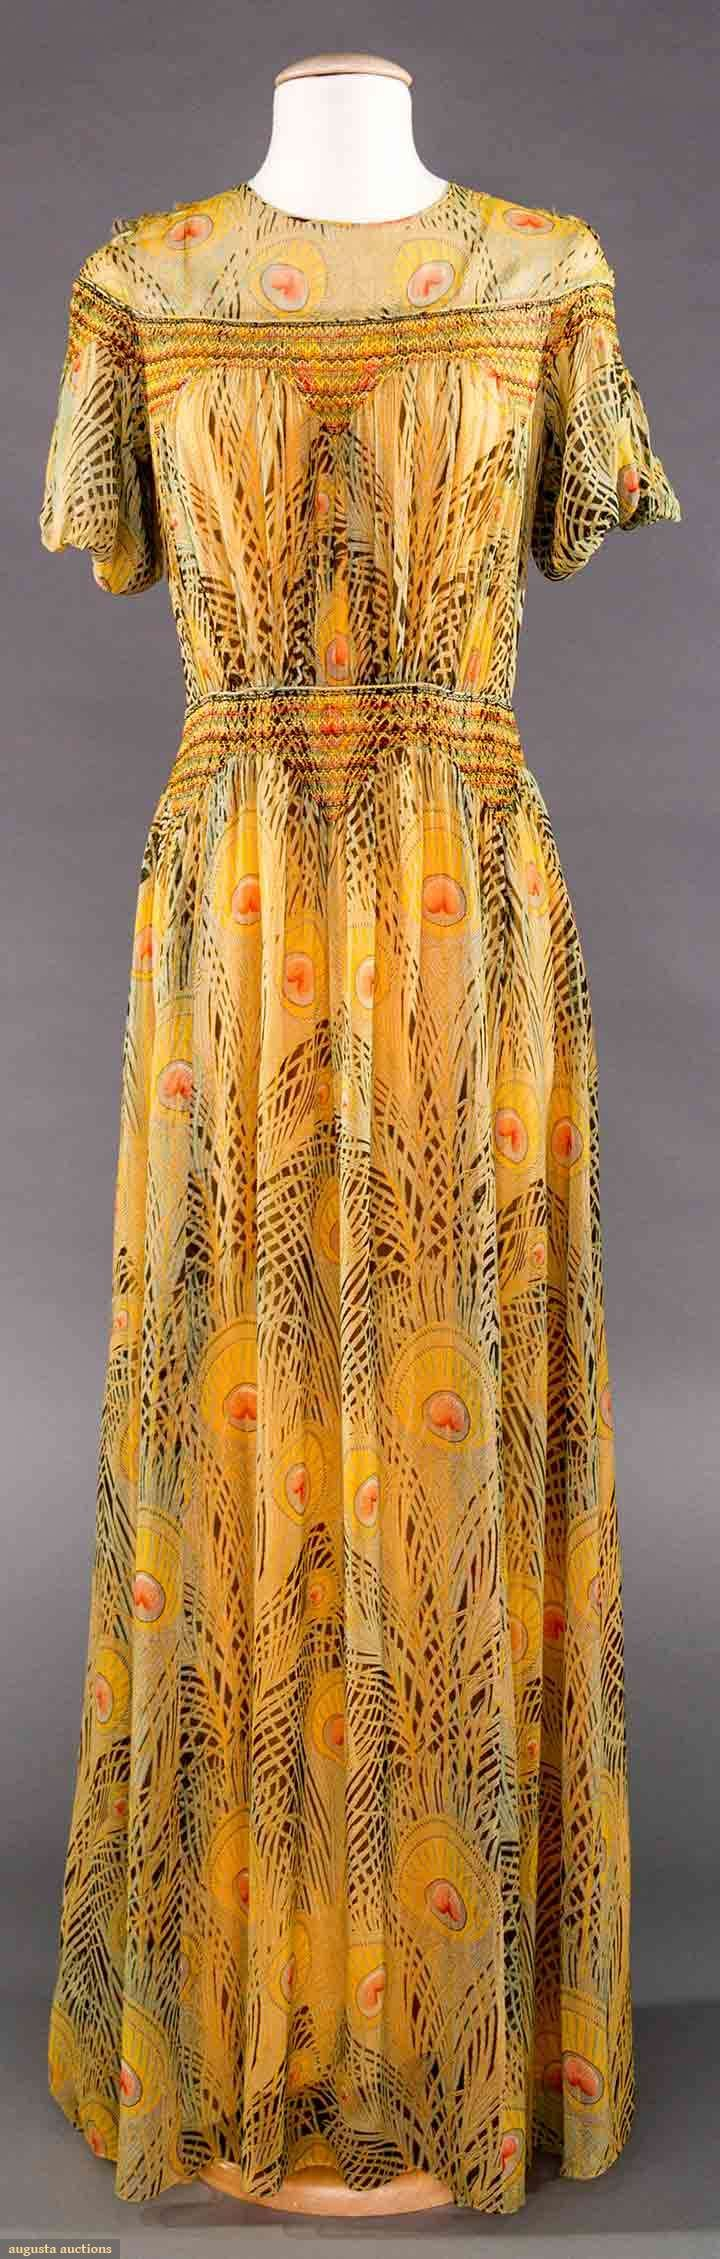 "LIBERTY PRINTED CHIFFON DRESS, LONDON, 1930s. 2017 Spring Augusta Auctions. Labeled ""Liberty & Co."" dress in signature peacock feather print, colorful smocking above bust & at midriff, short puff sleeves, original peach silk slip w/ peacock print spaghetti straps"